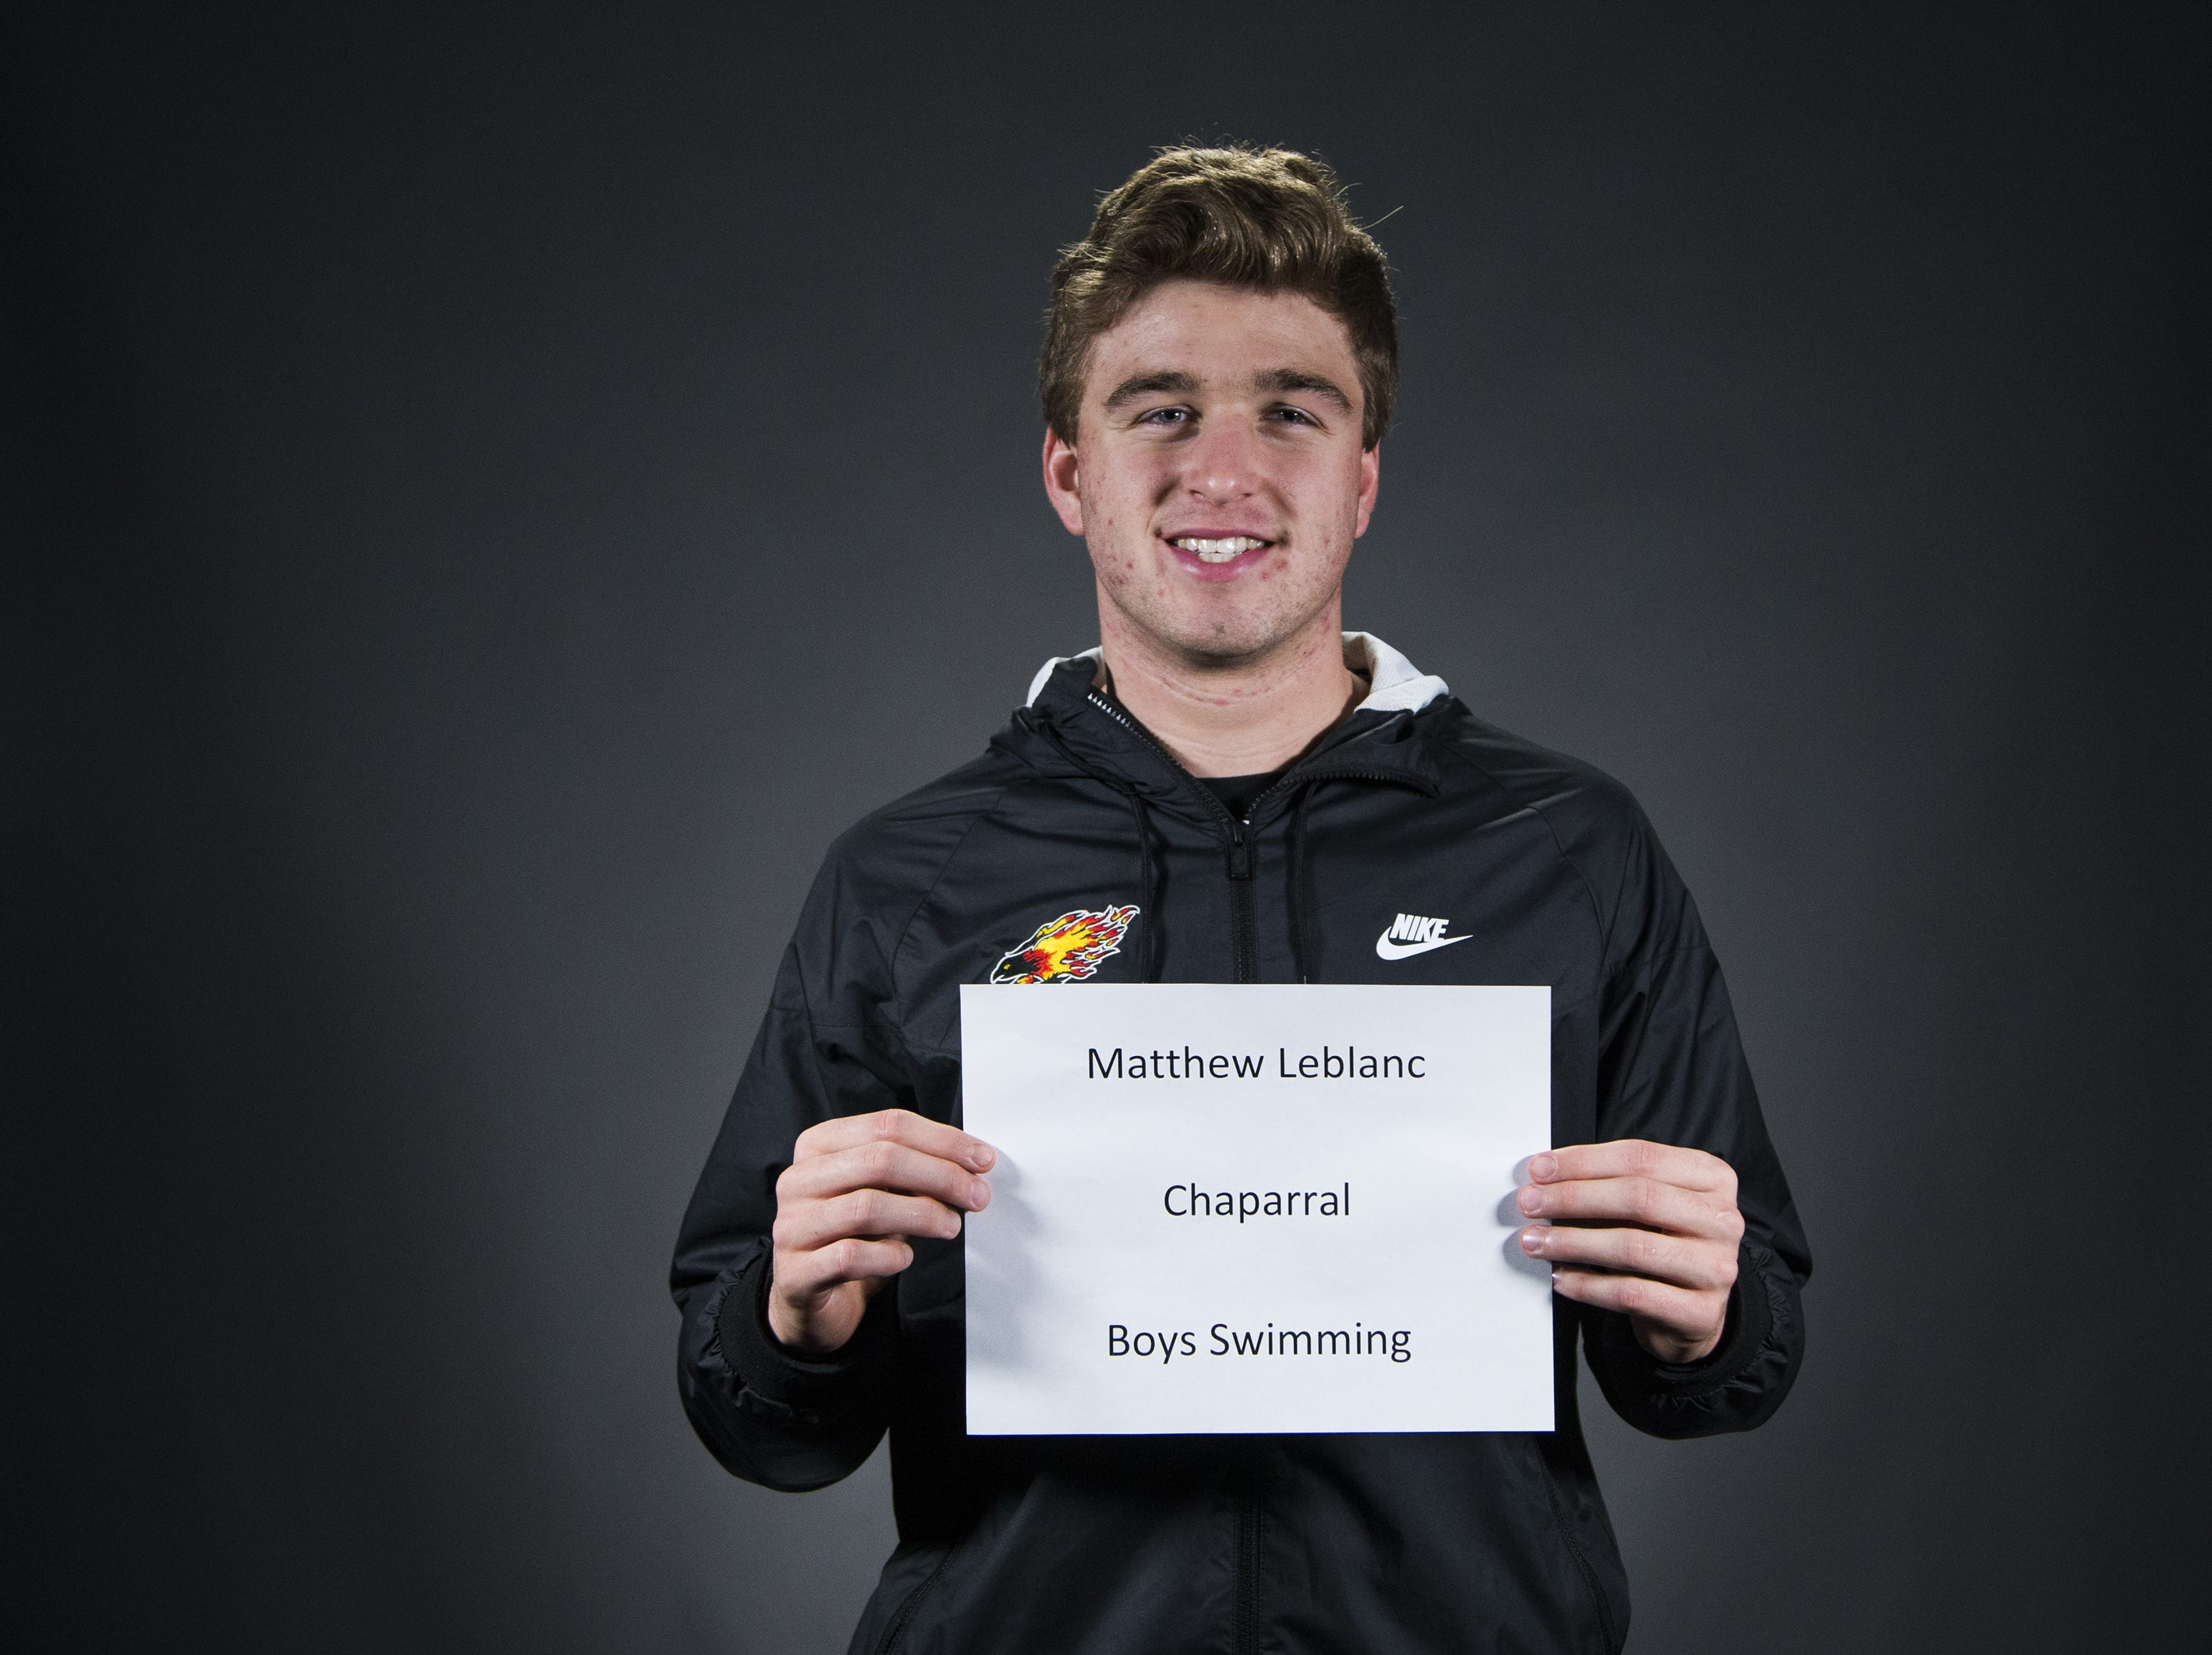 Matthew Leblanc of Chaparral High School is a finalist for the azcentral Sports Awards Boys Swimmer of the Year.  #azcsportsawards